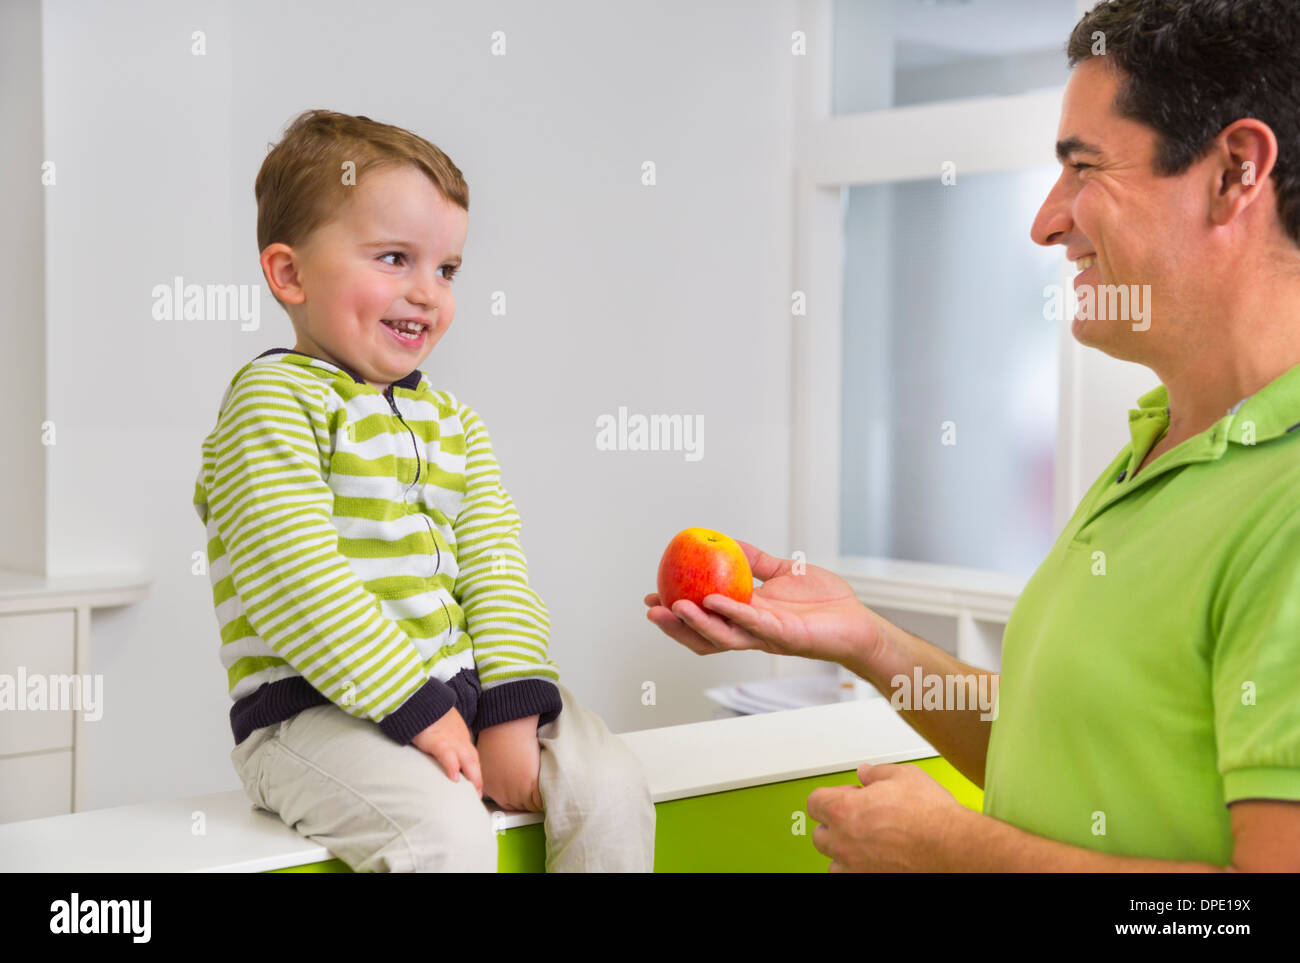 Man giving young boy apple - Stock Image